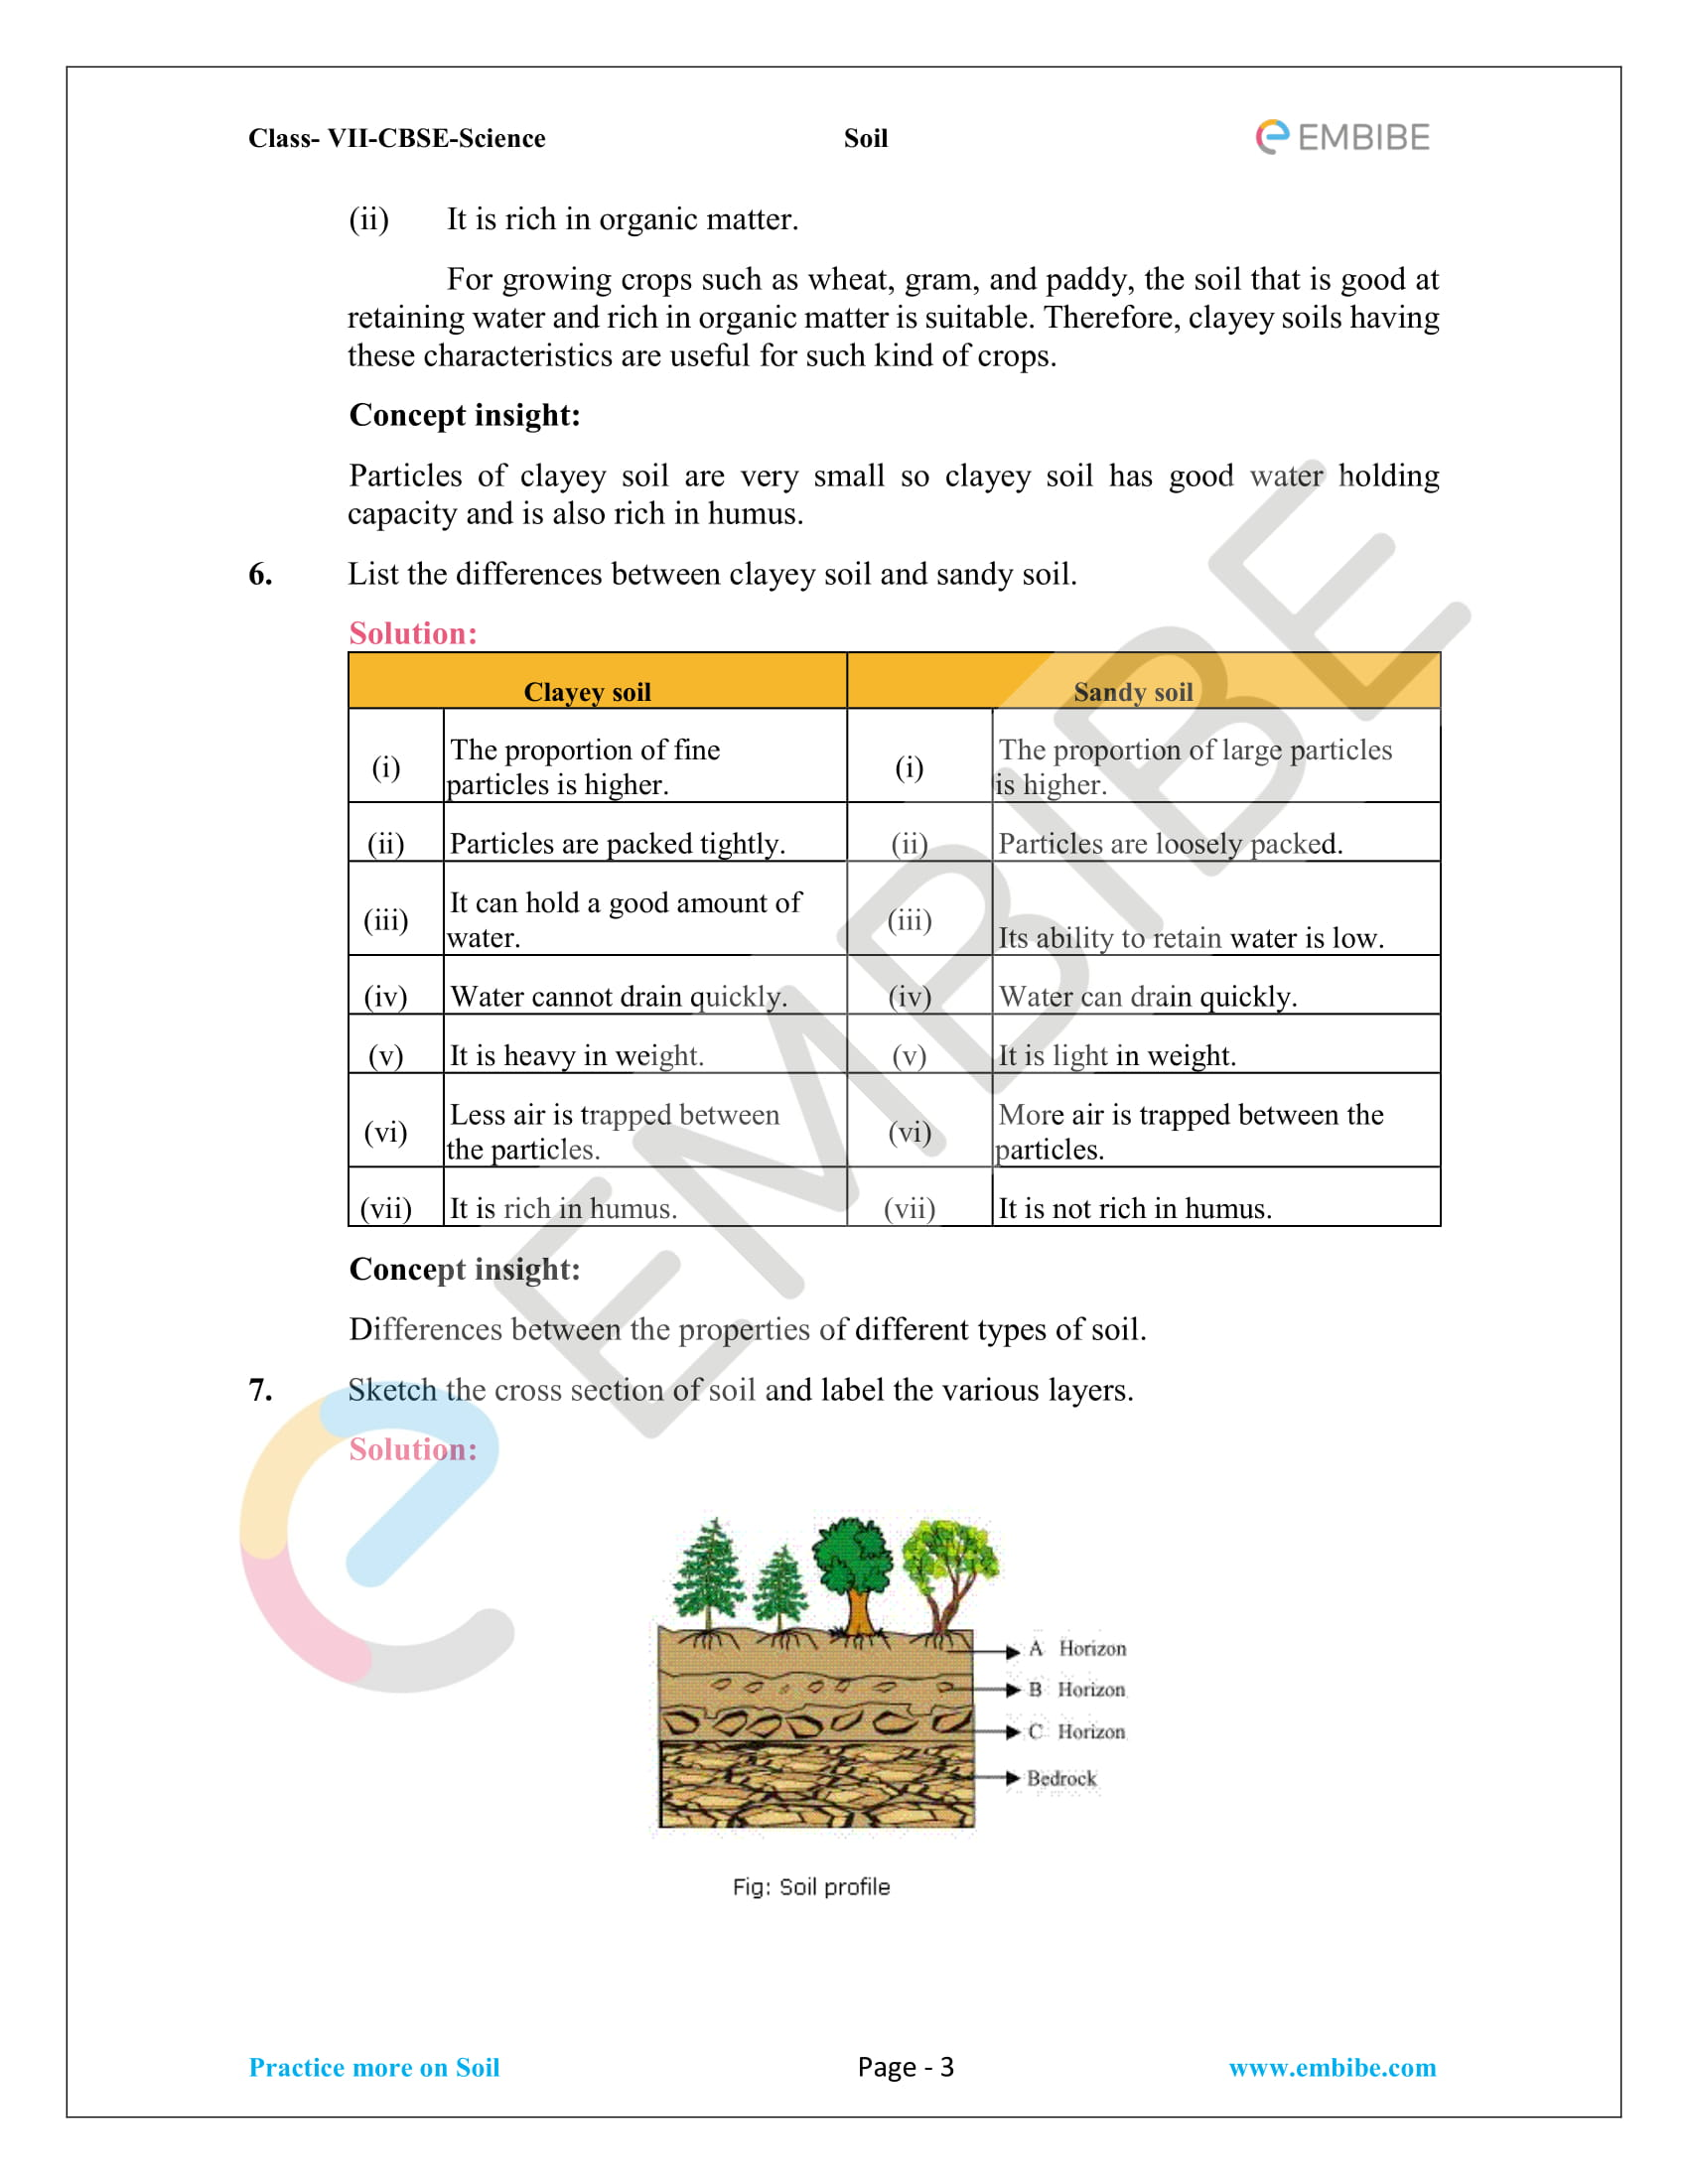 NCERT Solutions For Class 7 Science Chapter 9: Soil (PDF